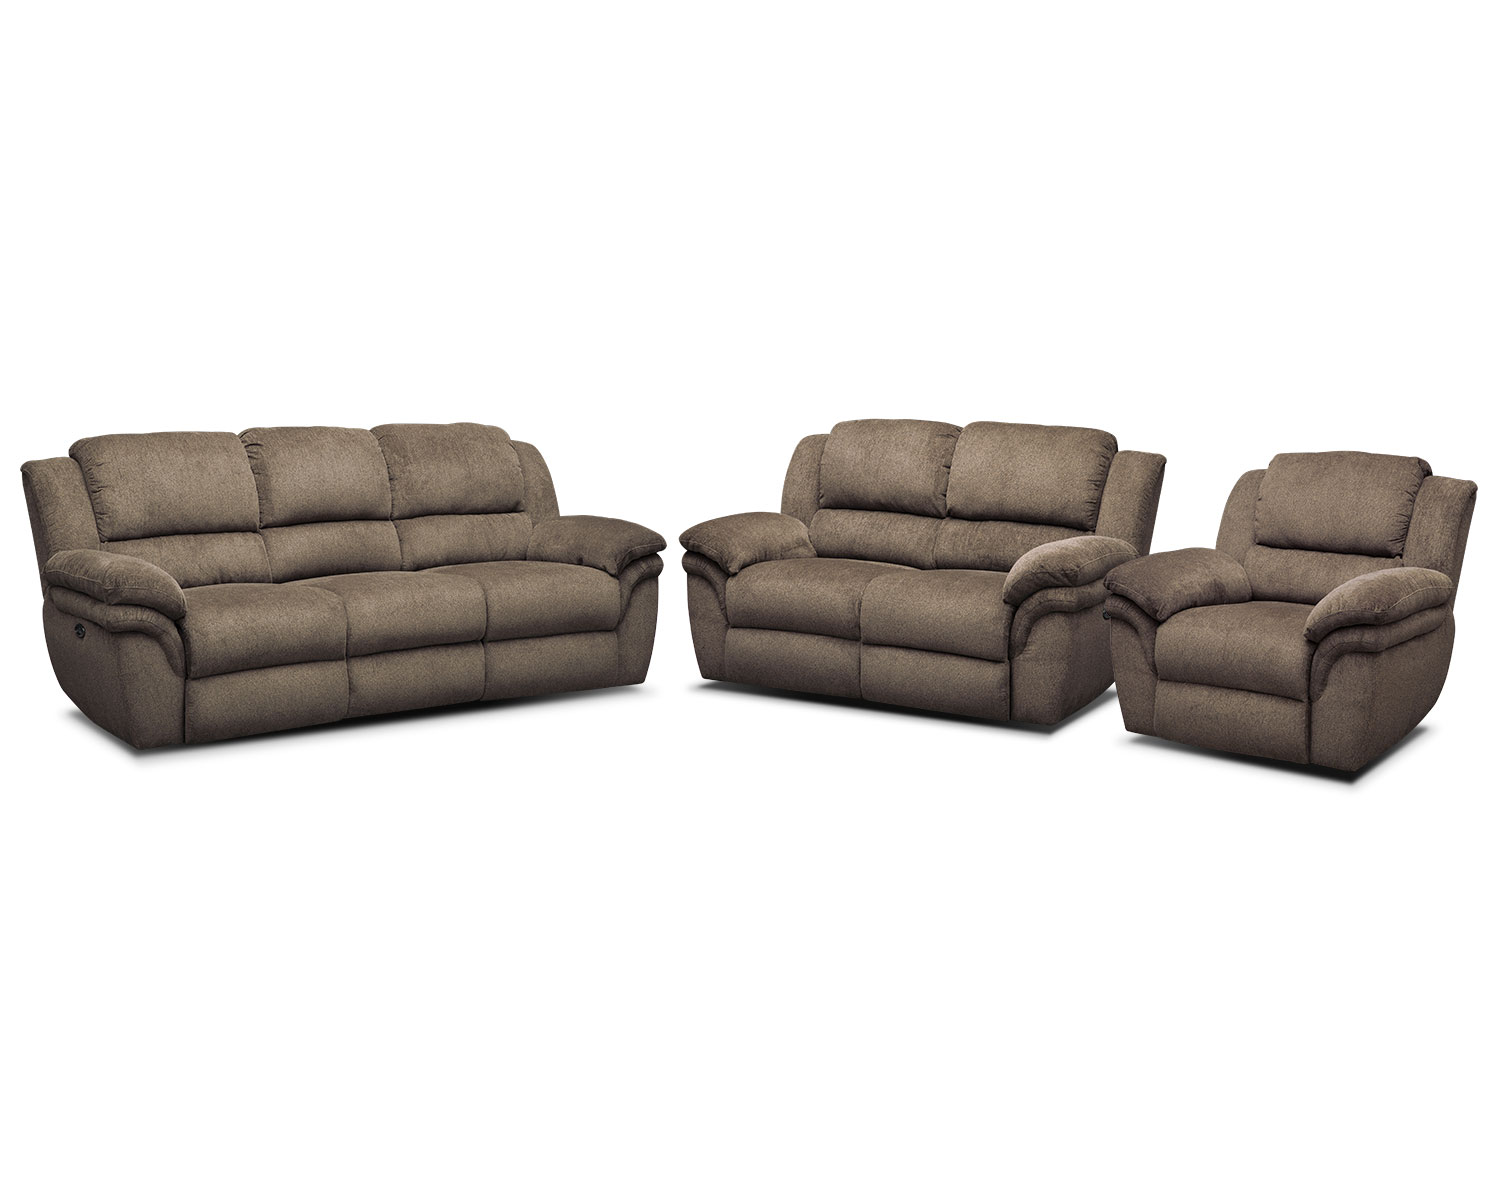 The Omni Mocha Power Reclining Living Room